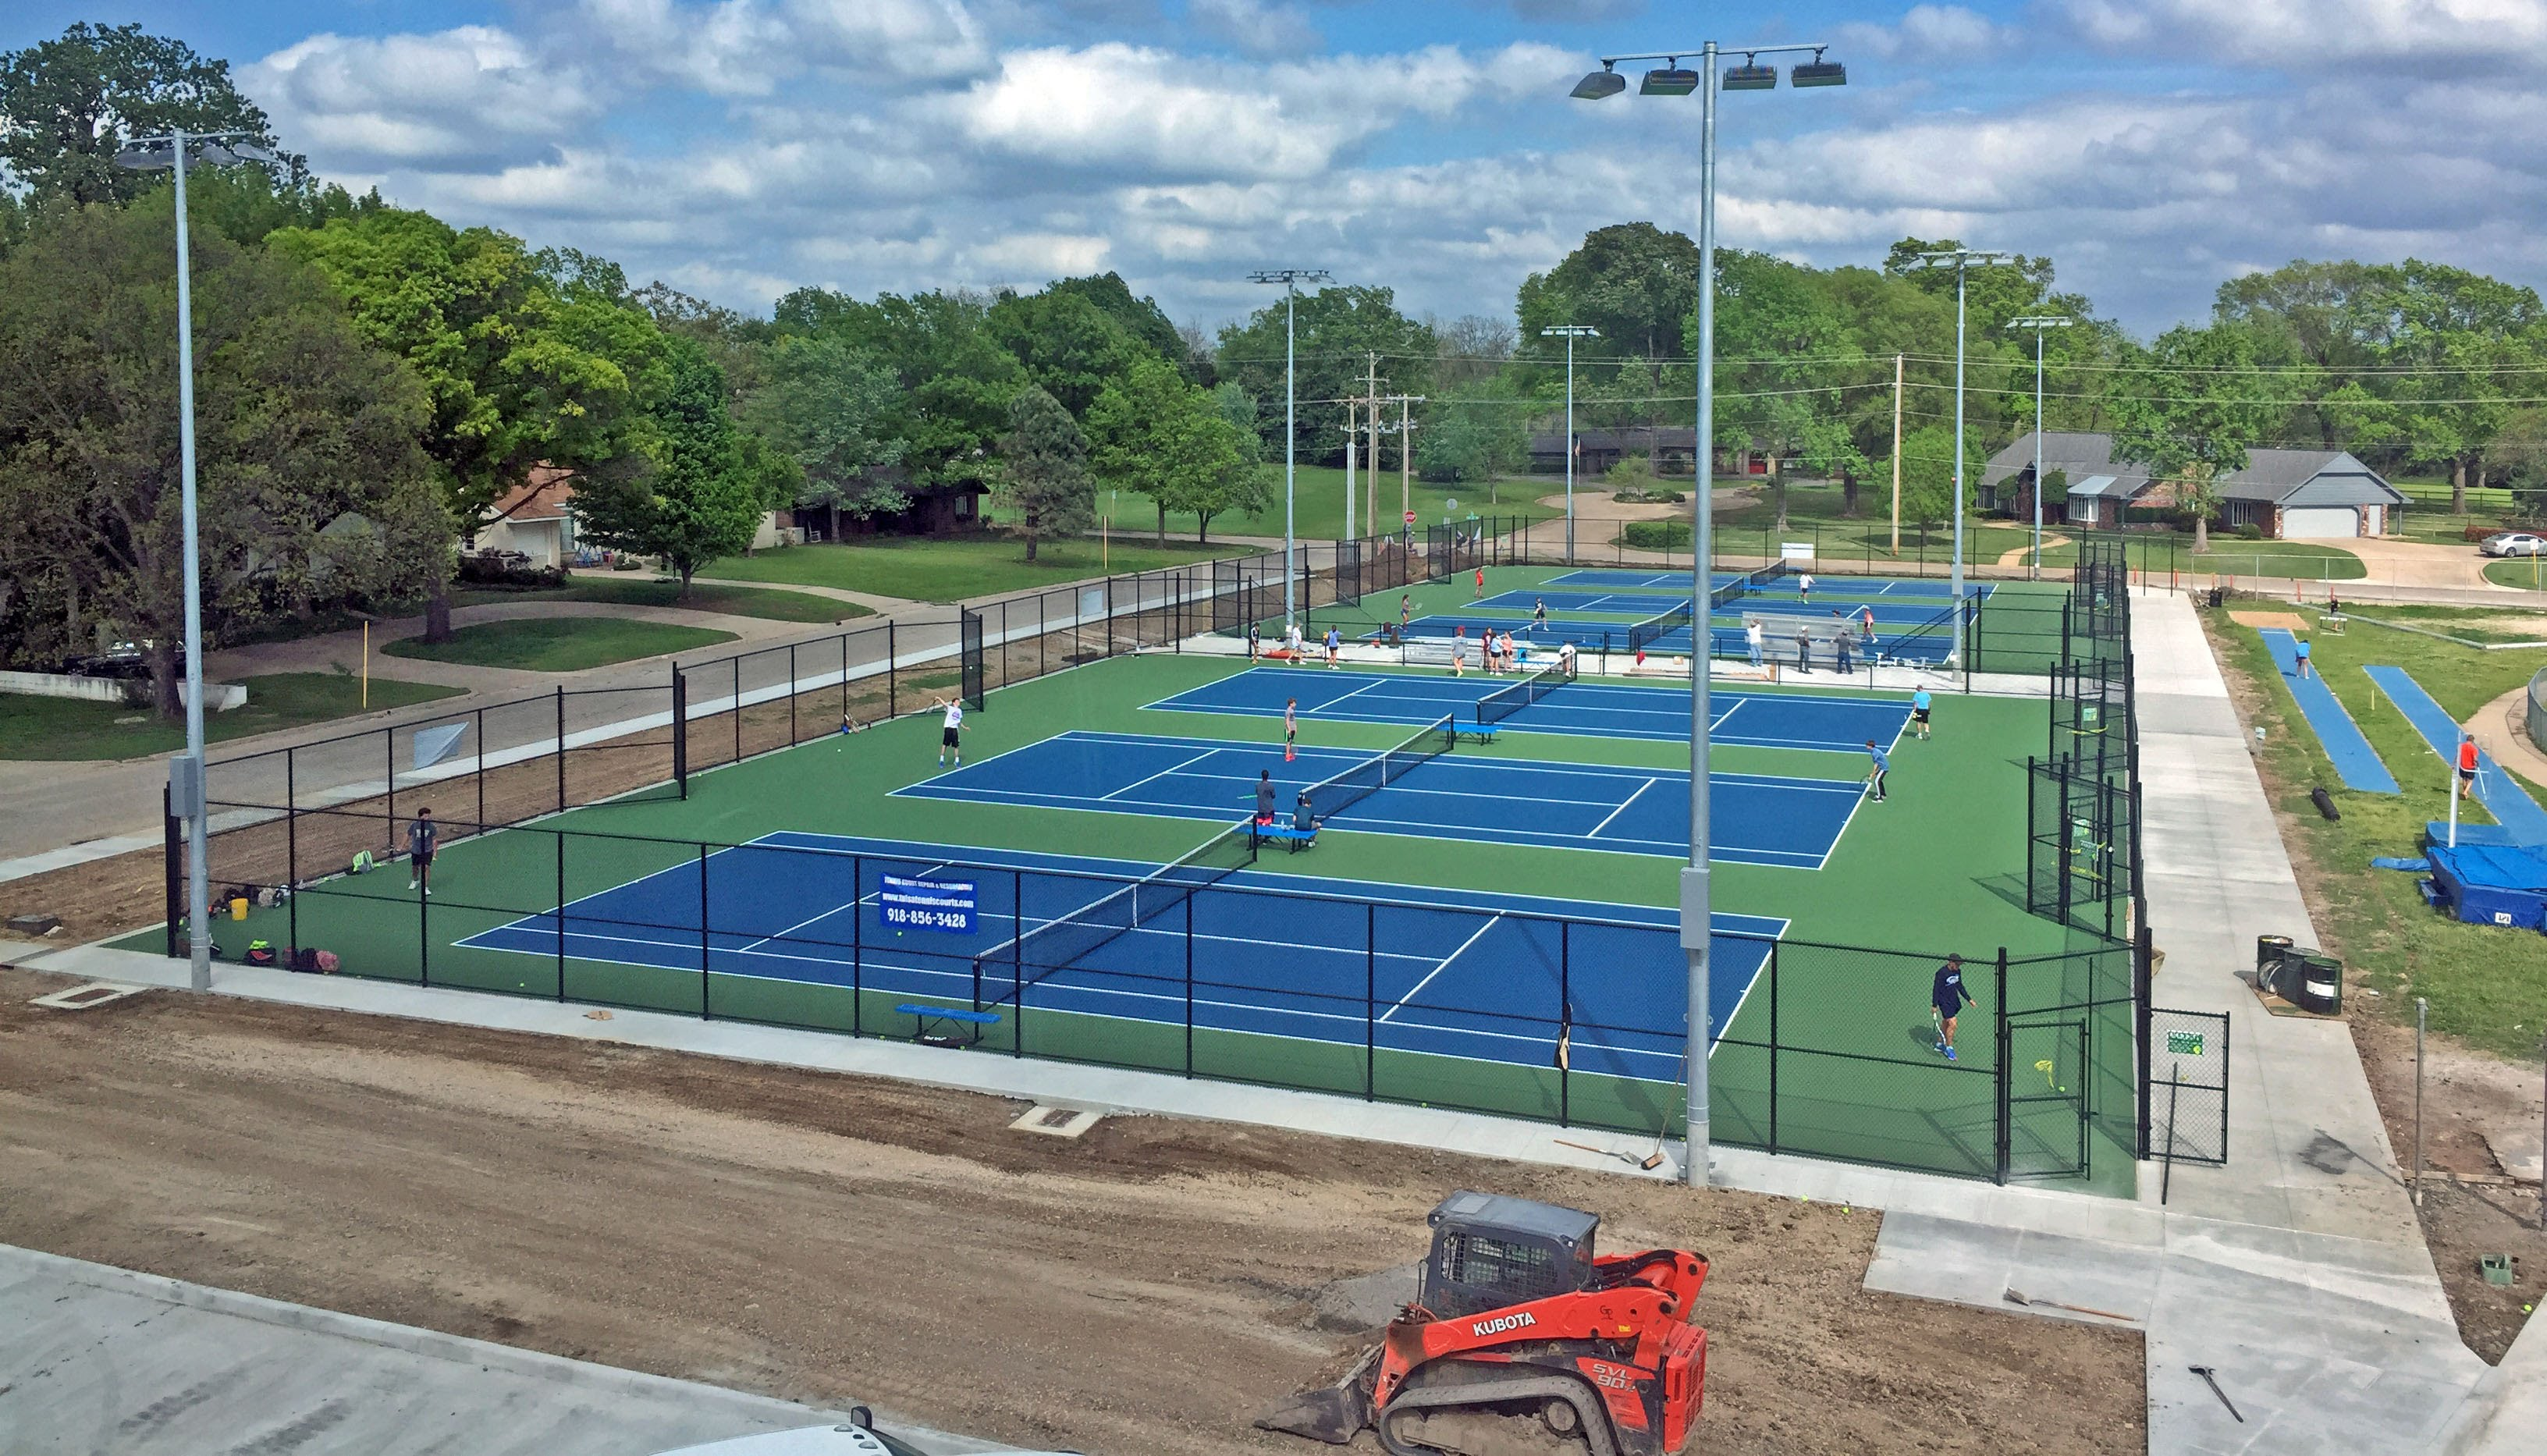 New courts